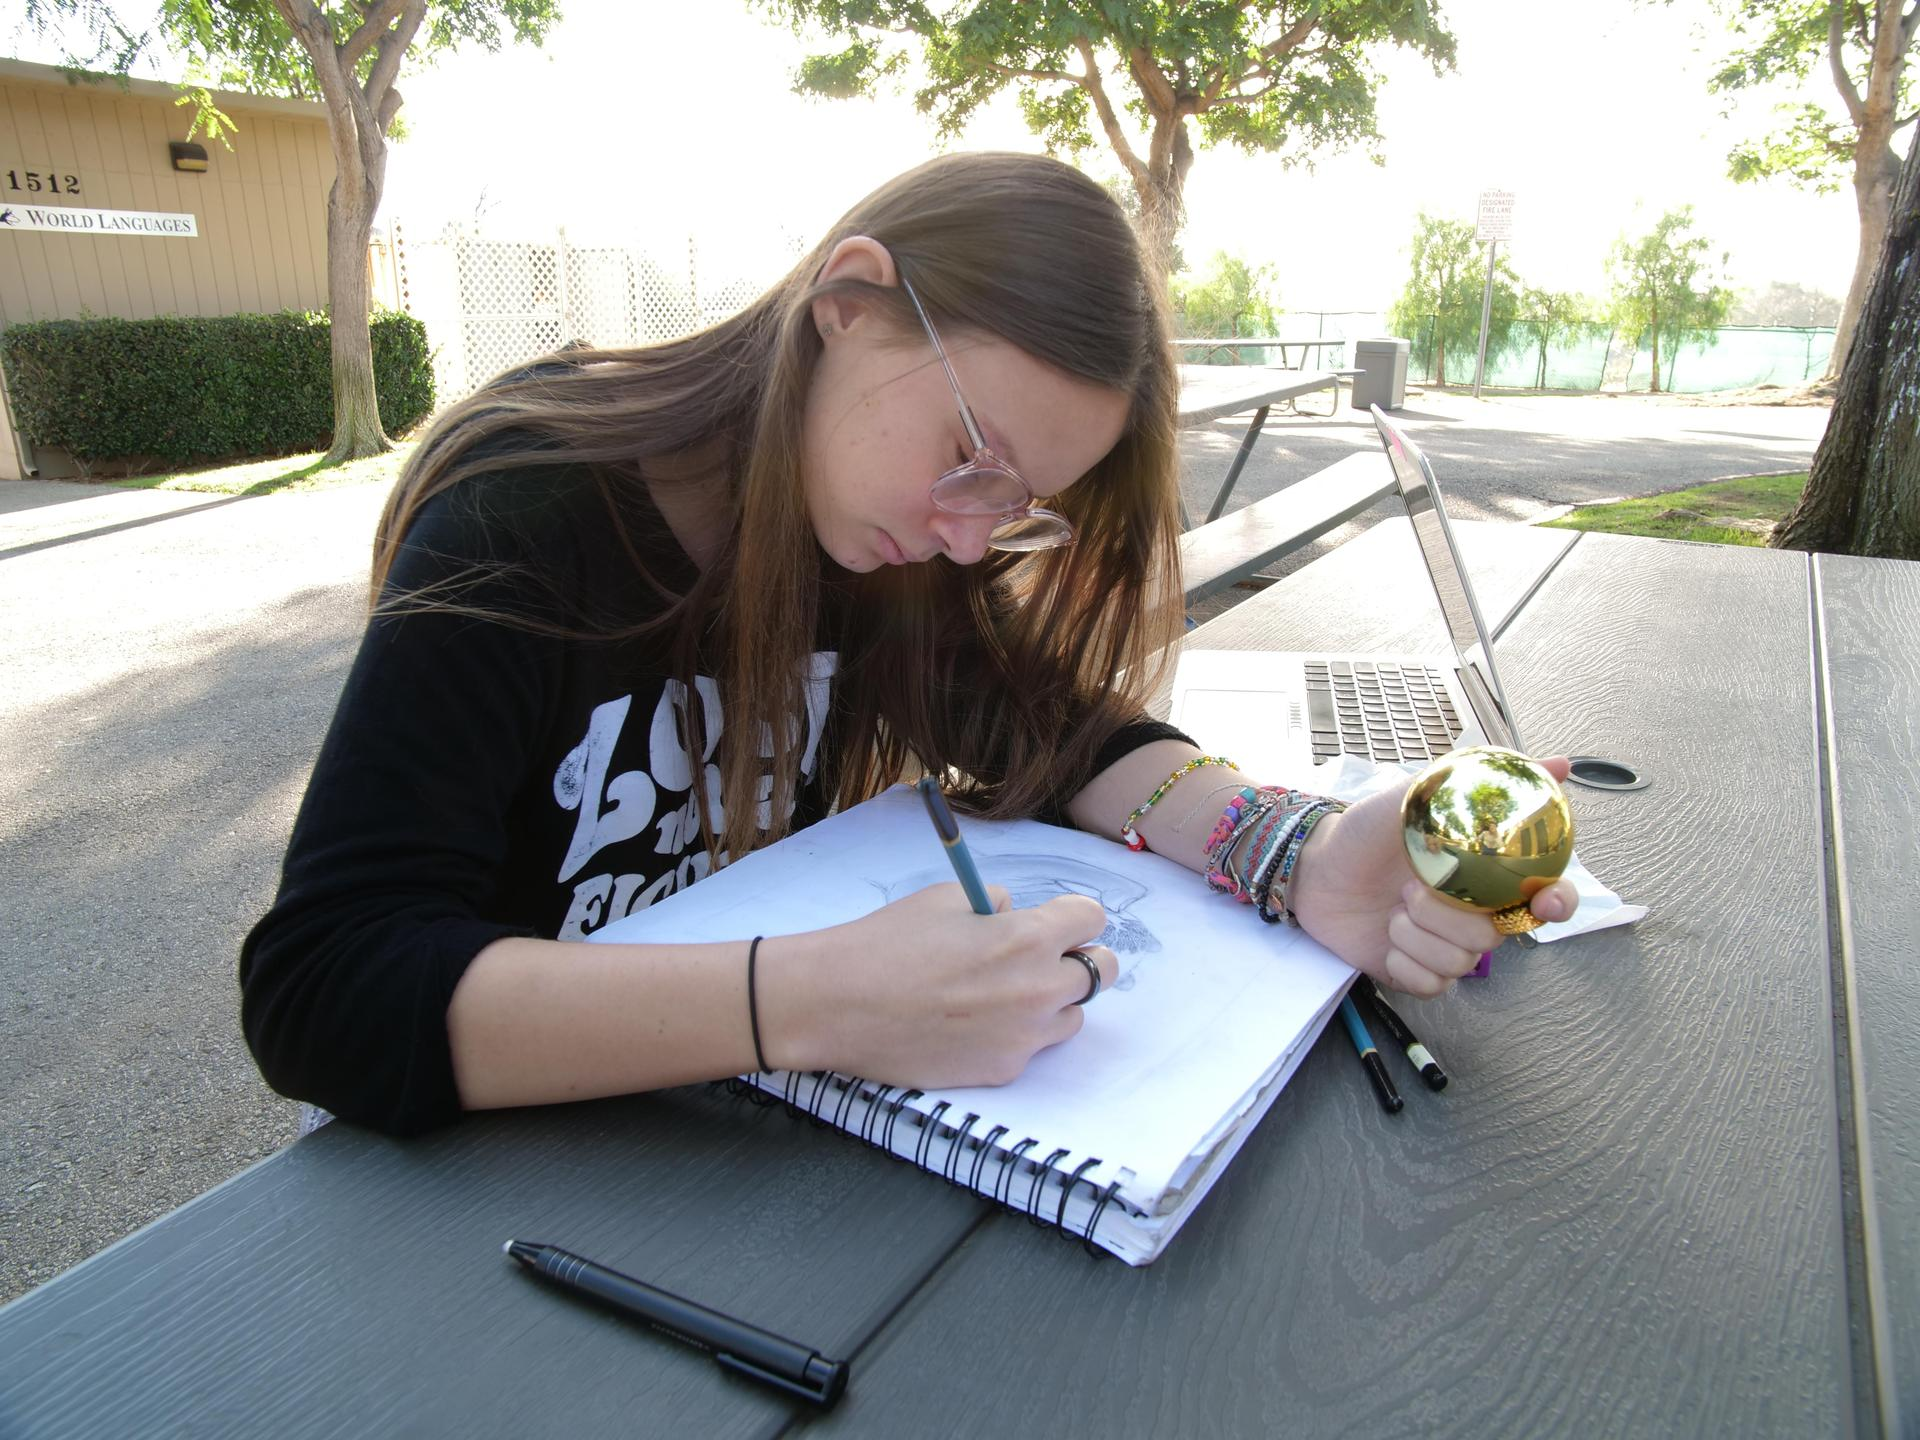 Upper school student working outdoors on reflections for drawing and painting.